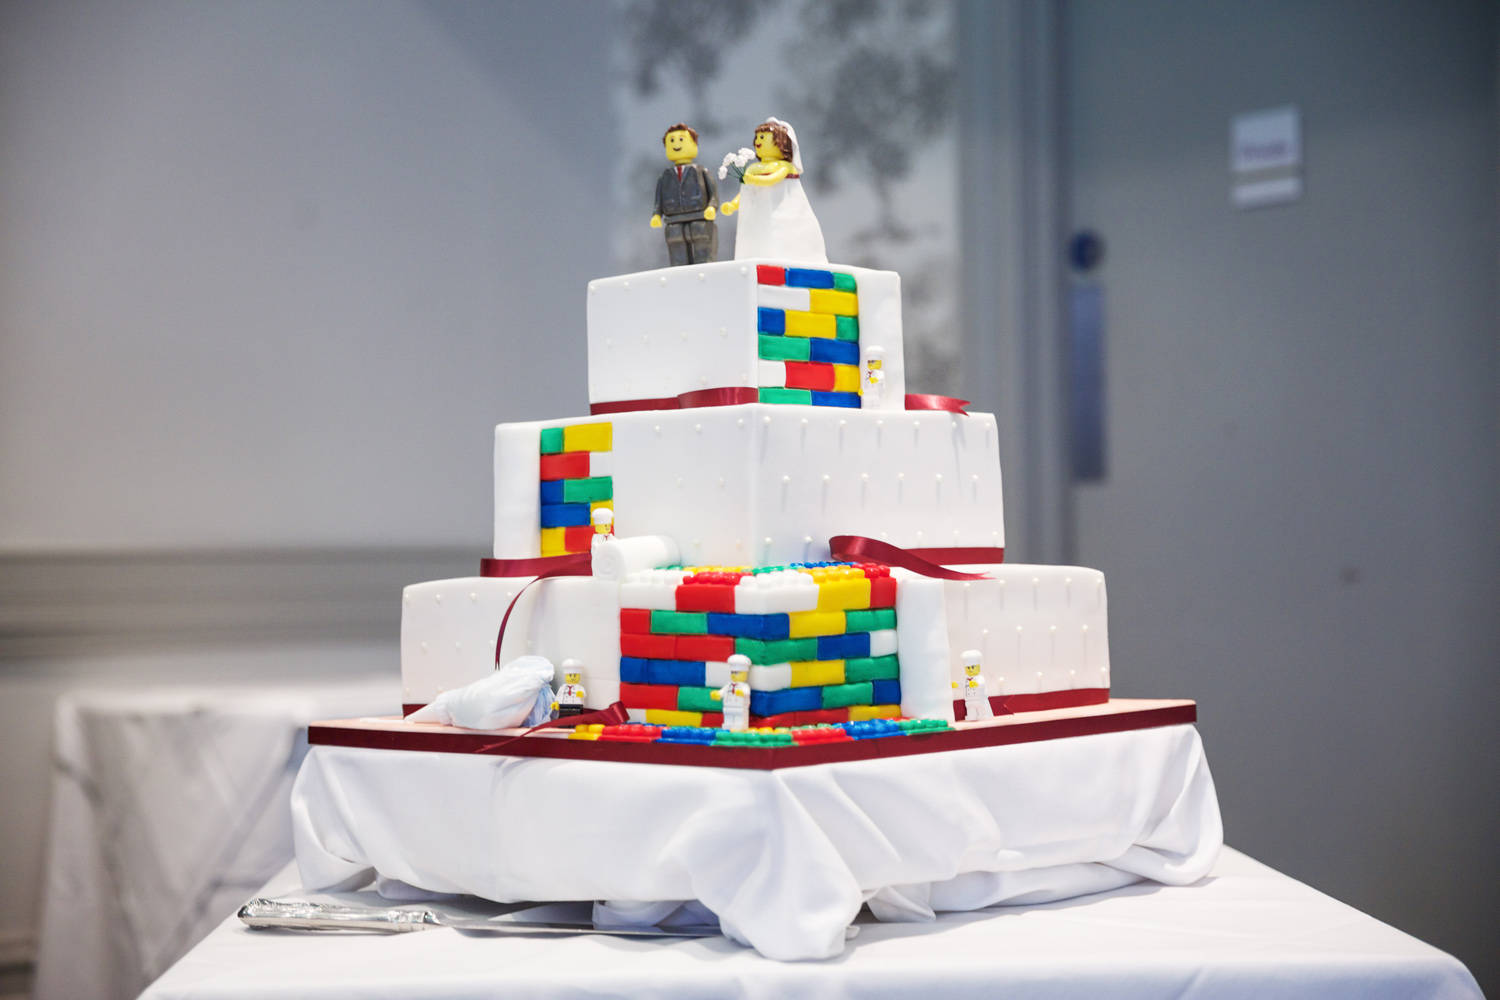 Lego Themed Wedding Cake Includes Personalised And Edible Minifigure Groom Bride Three Tier